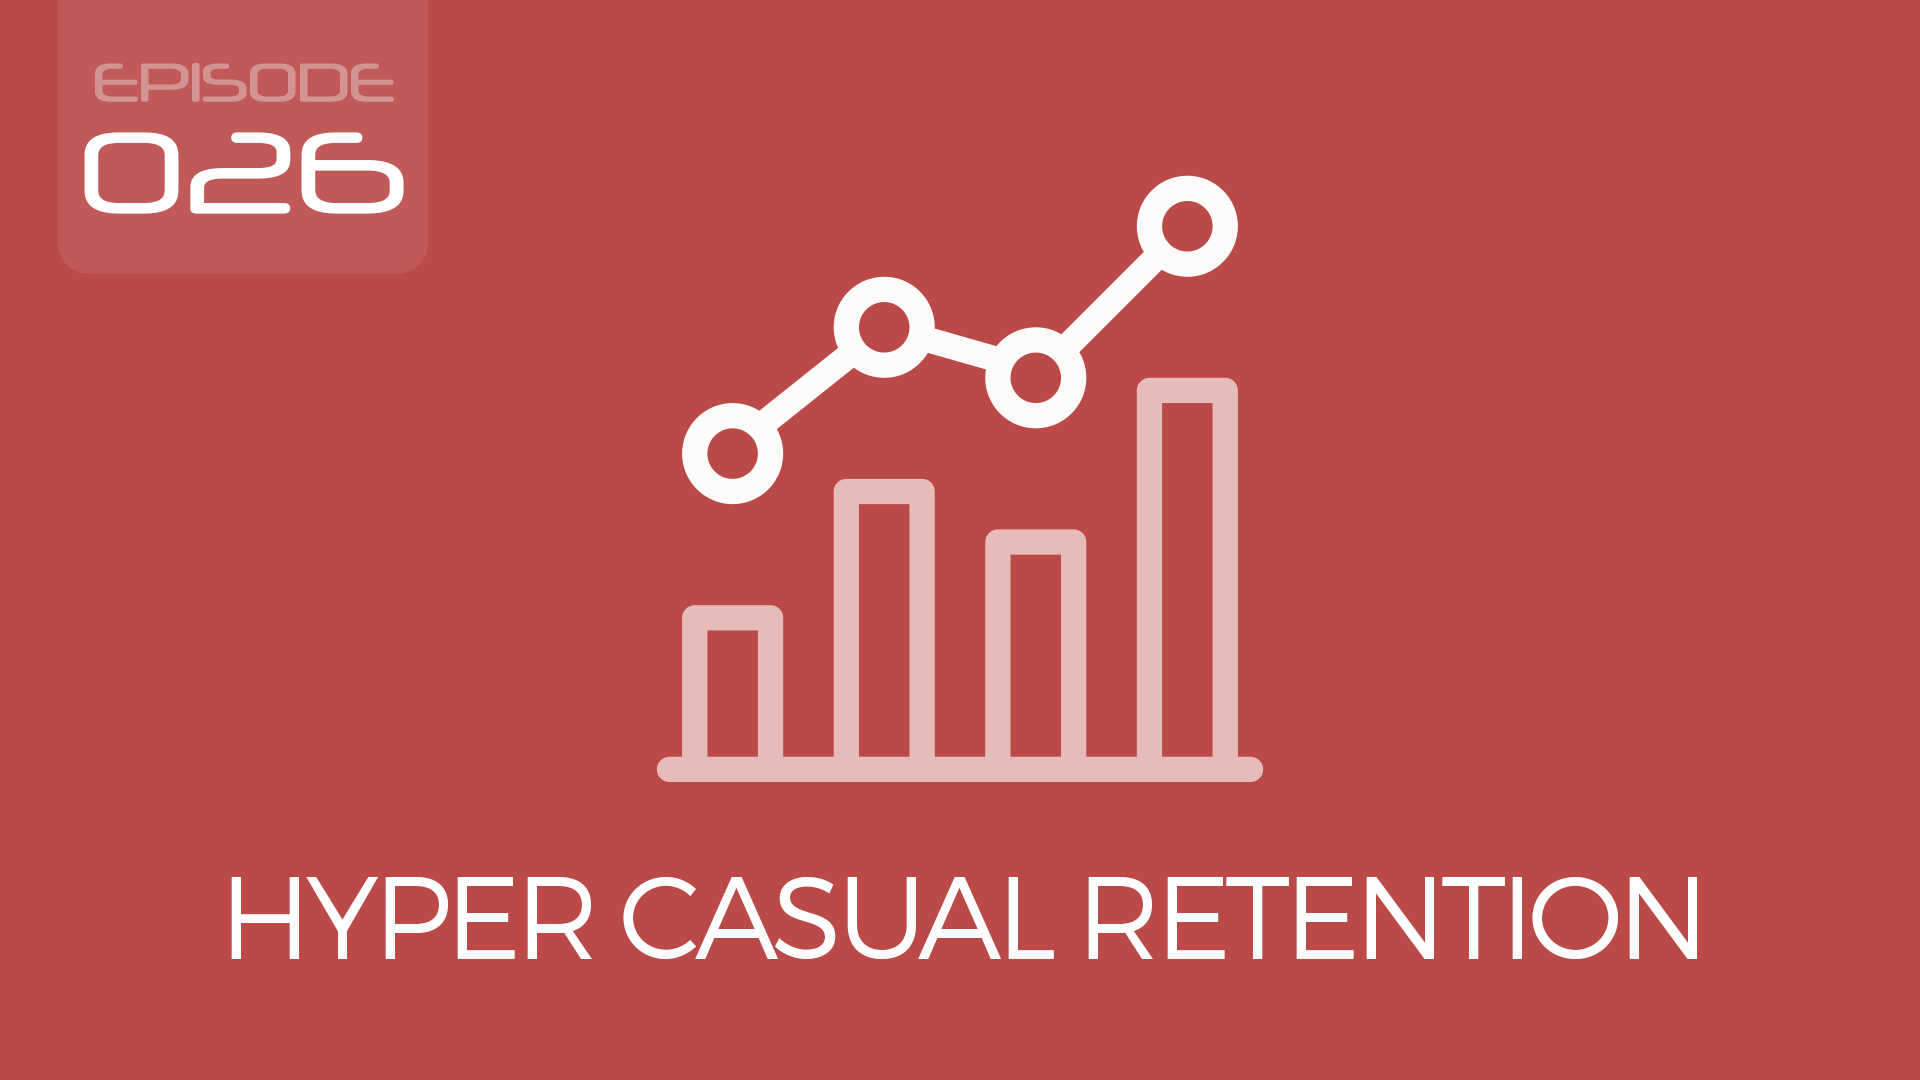 Hyper Casual Games & Retention